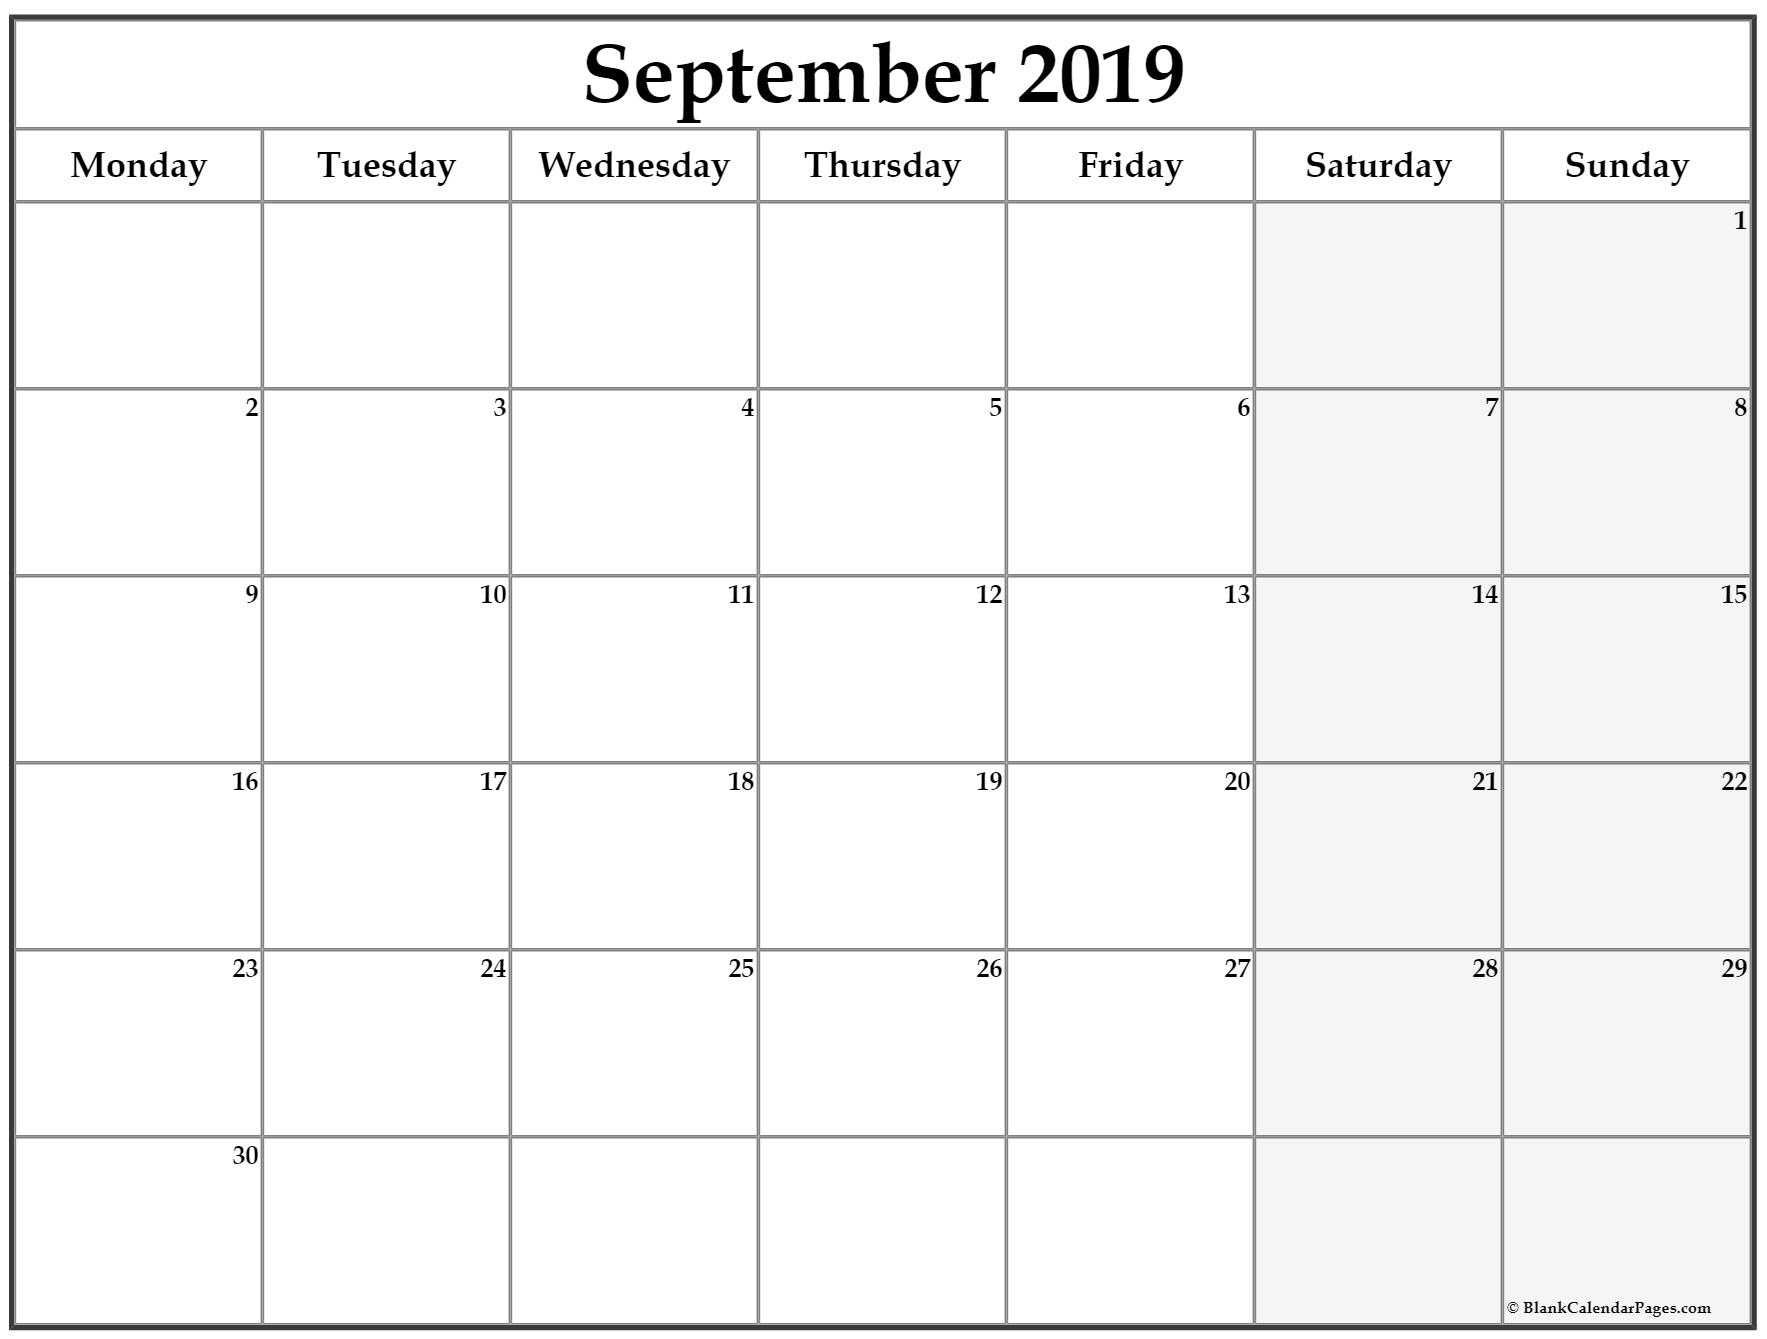 September 2019 Monday Calendar | Monday To Sunday within Blank Calendar Starting With Monday